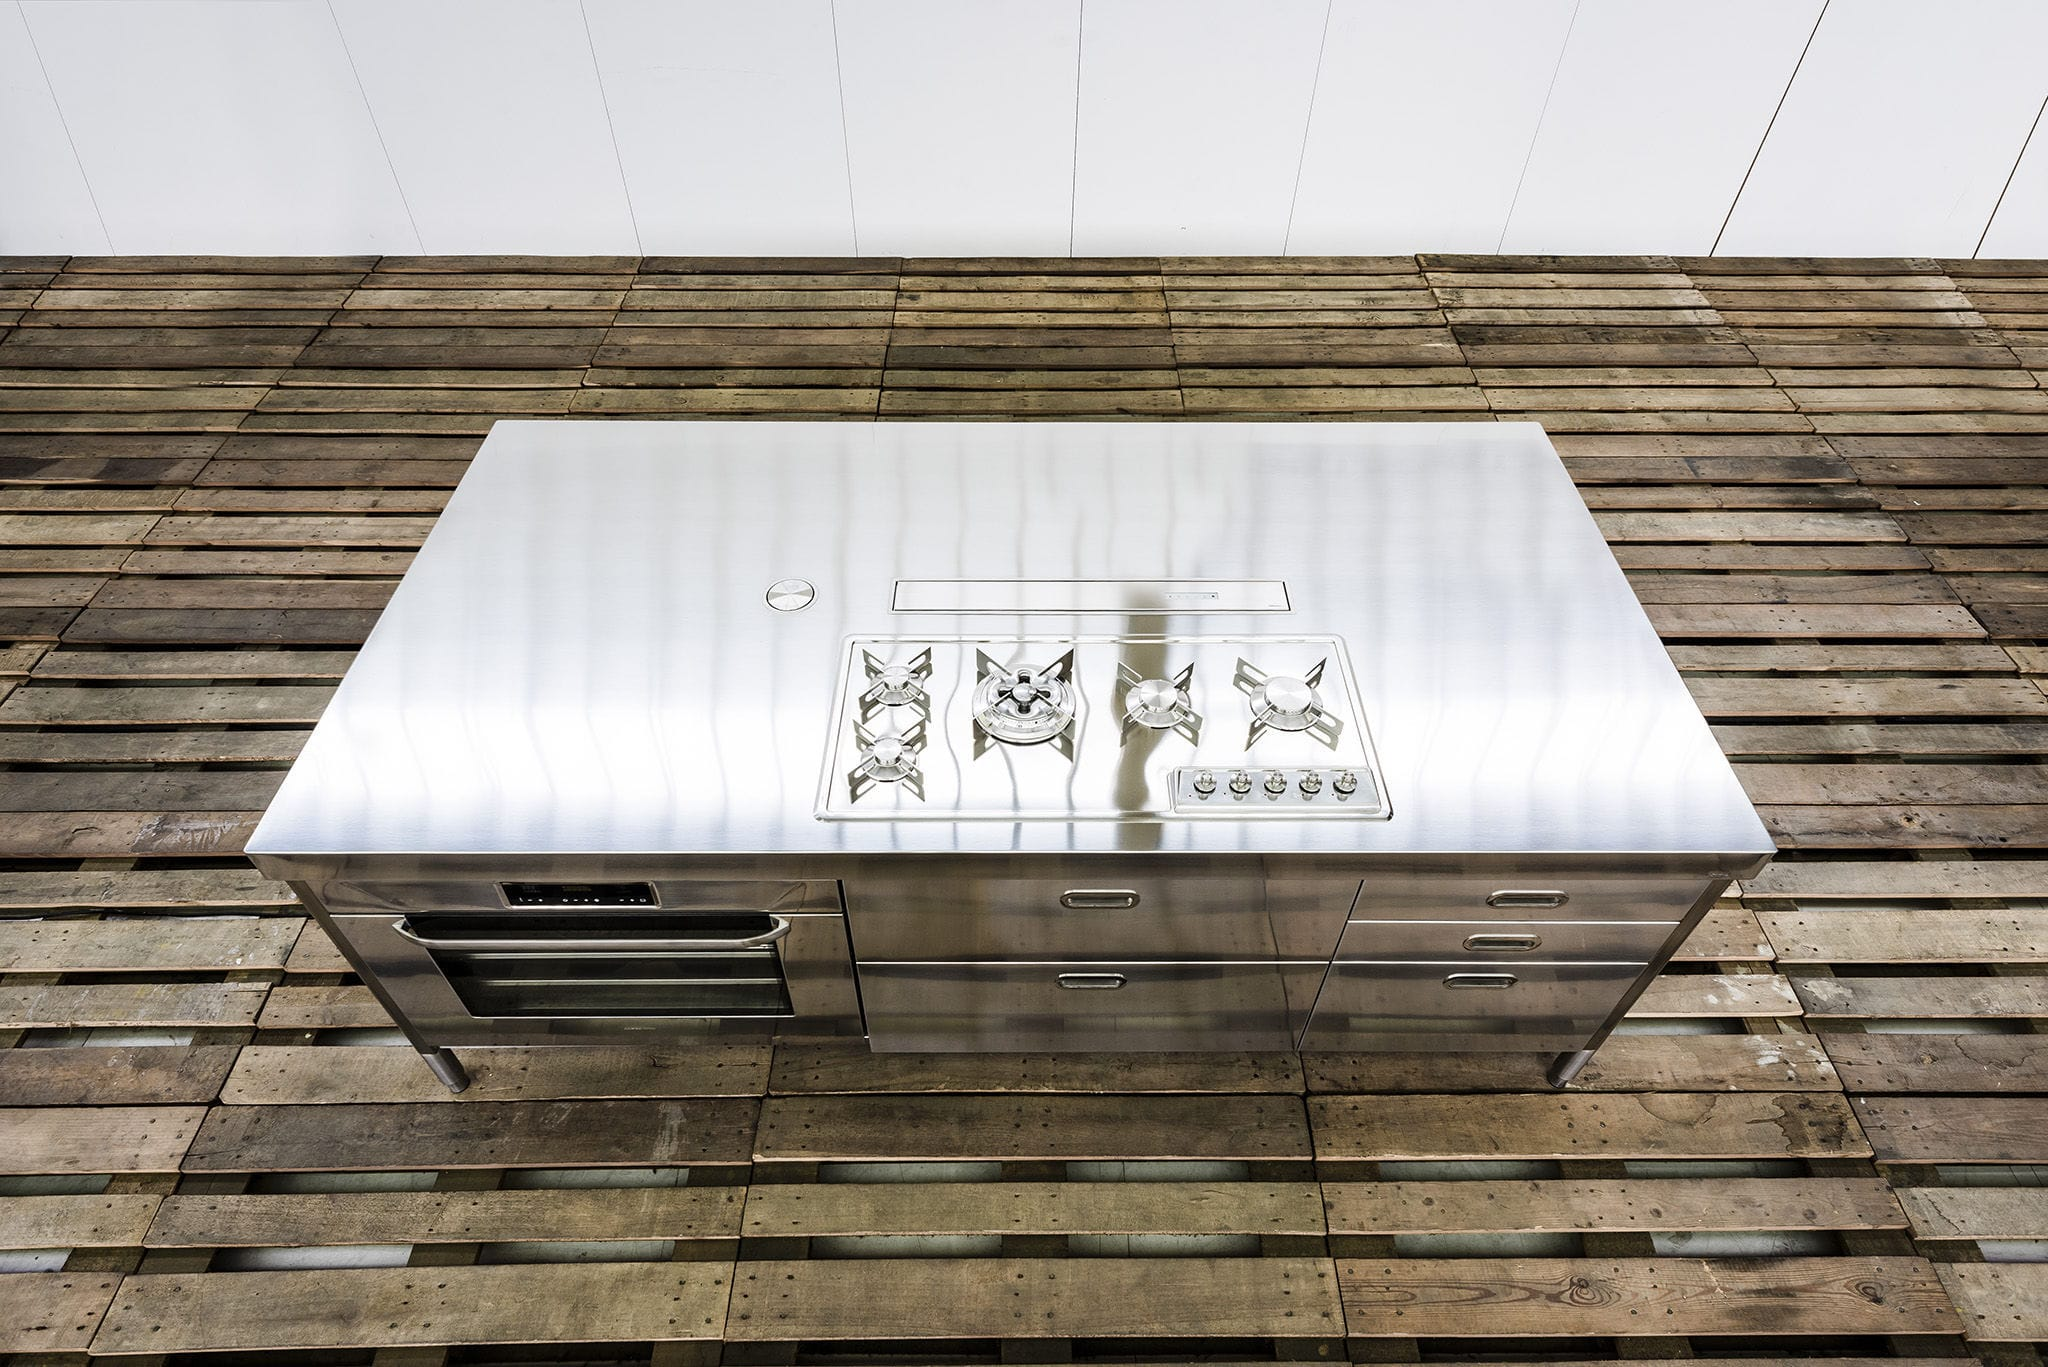 Kücheninsel - 250 WITH BUILT-IN EXTRACTOR HOOD - ALPES-INOX